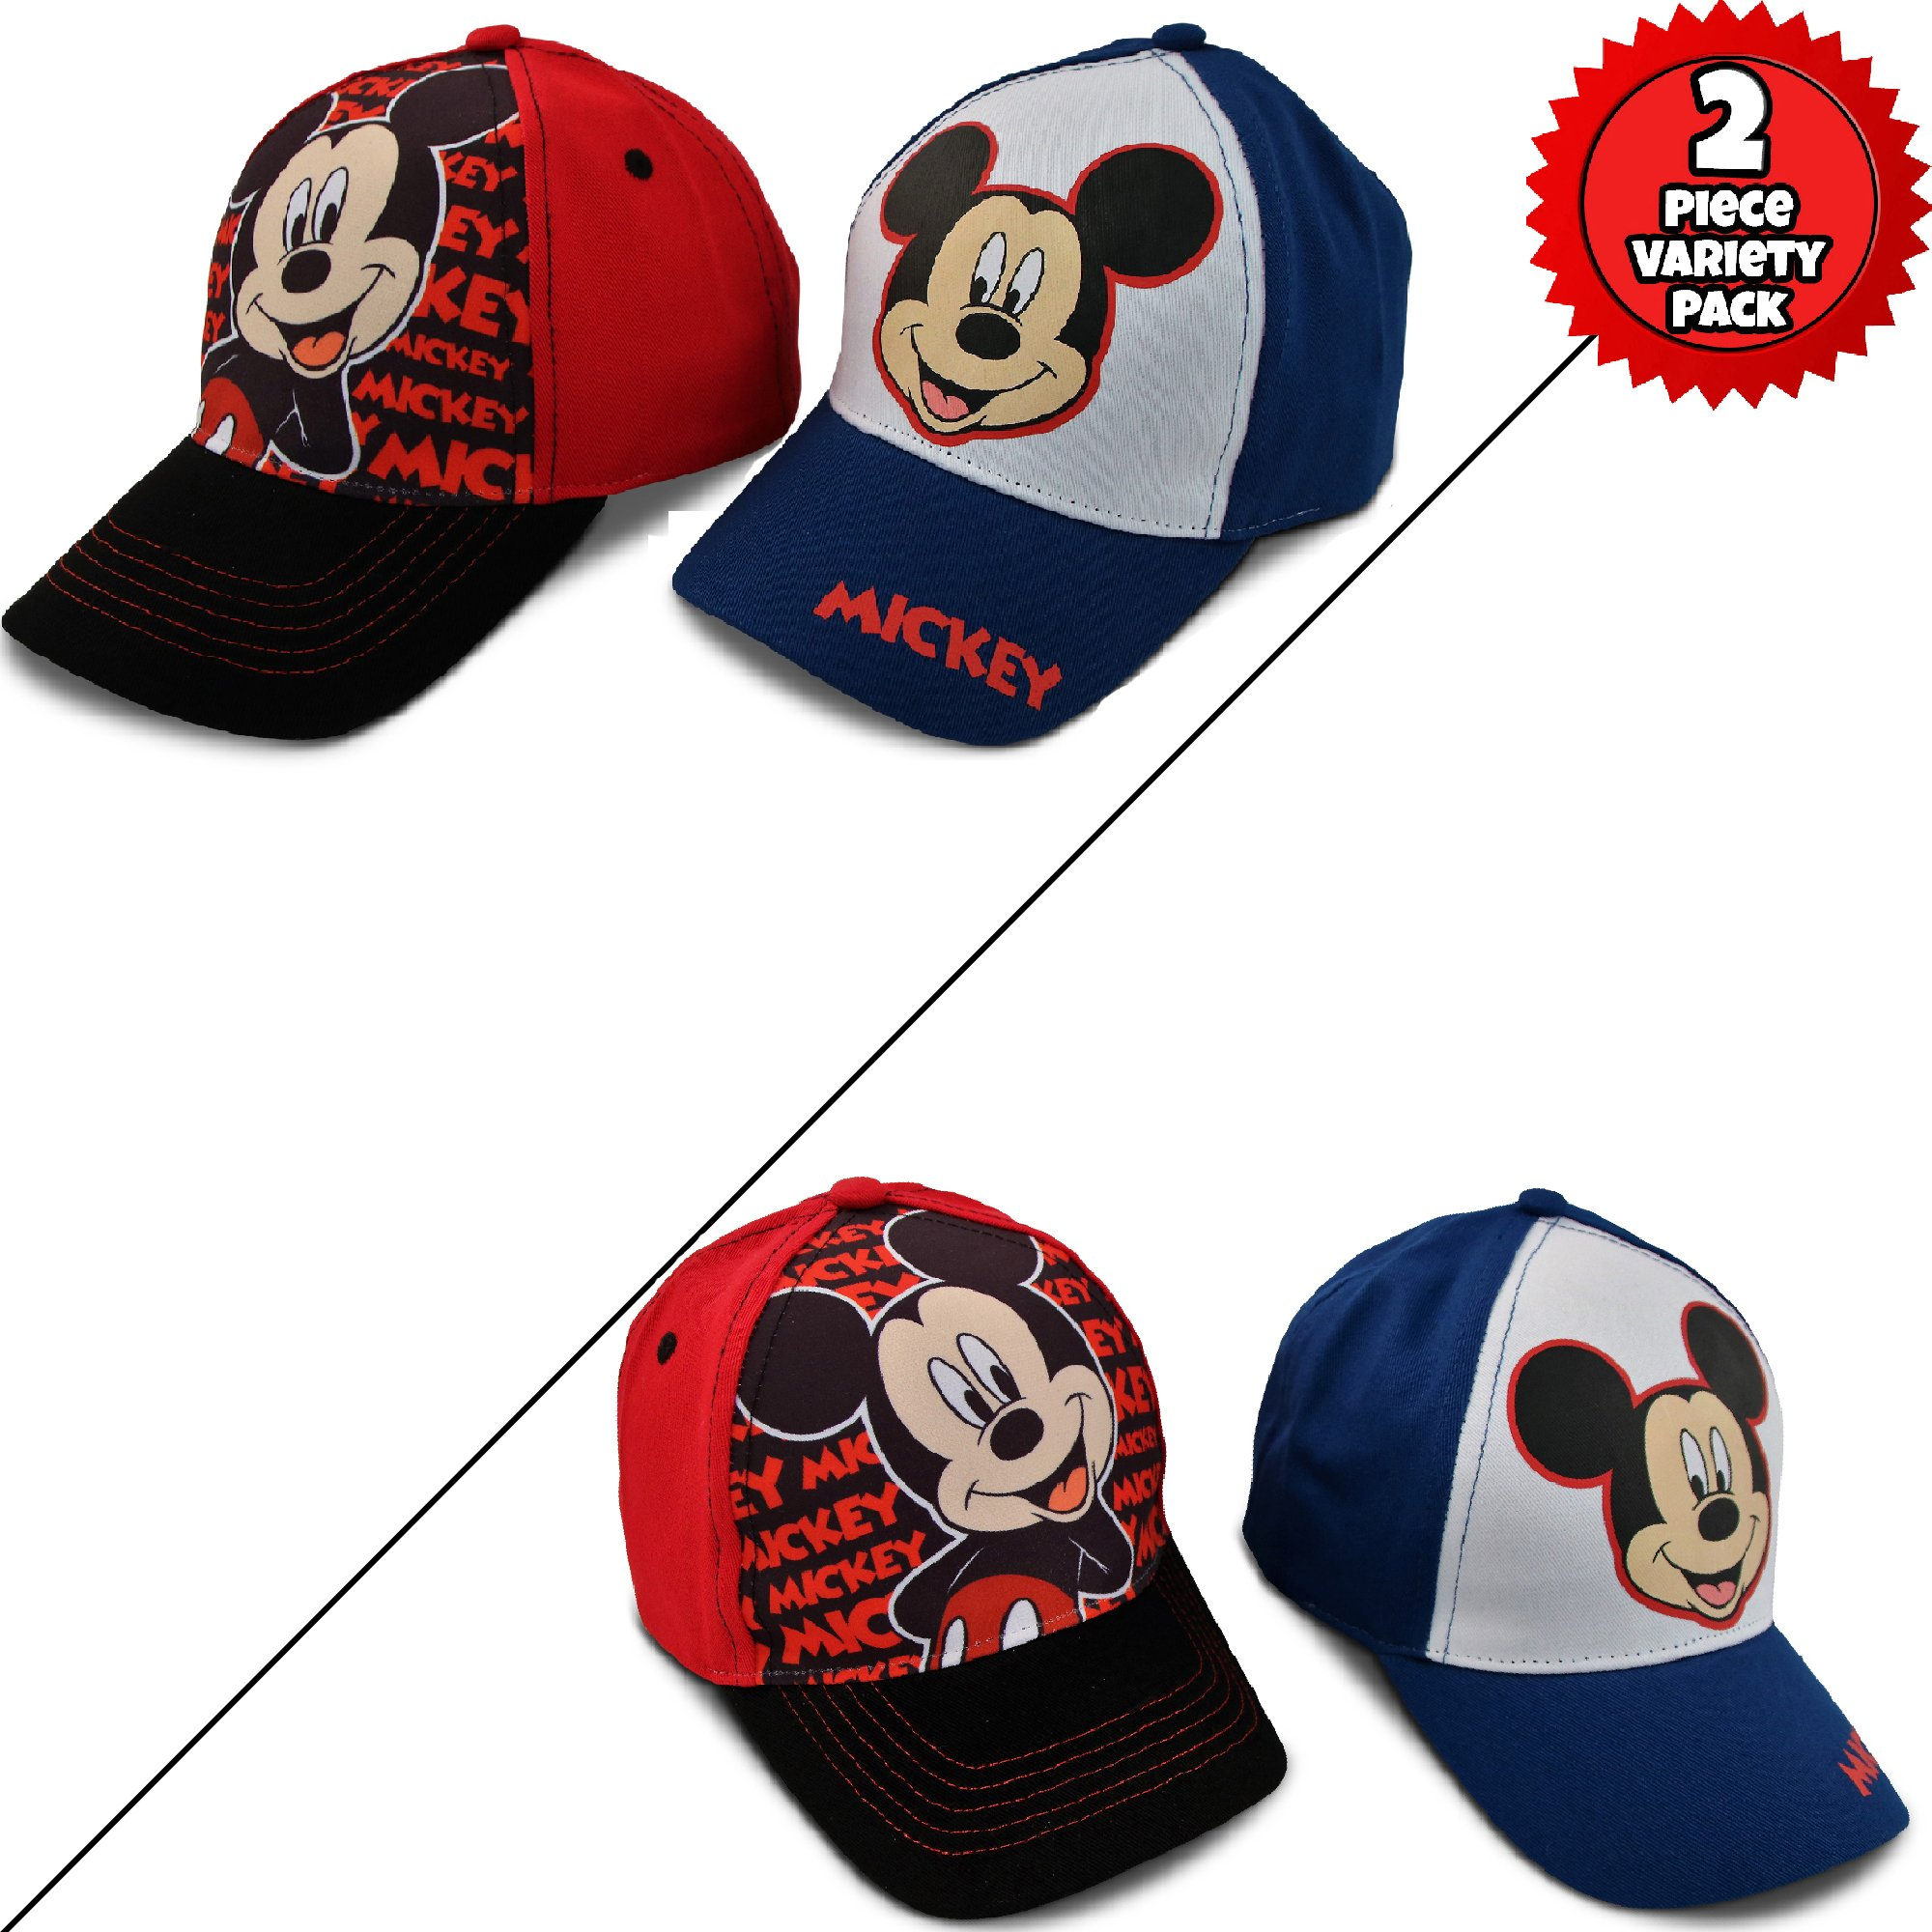 Disney Little Boys Assorted Character Cotton Baseball Cap, 2 Piece Design Set, Age 2-7 (Toddler Boys – Age 2-4 – 51 cm, Mickey Mouse Design – 2 Piece Set) by Disney (Image #6)